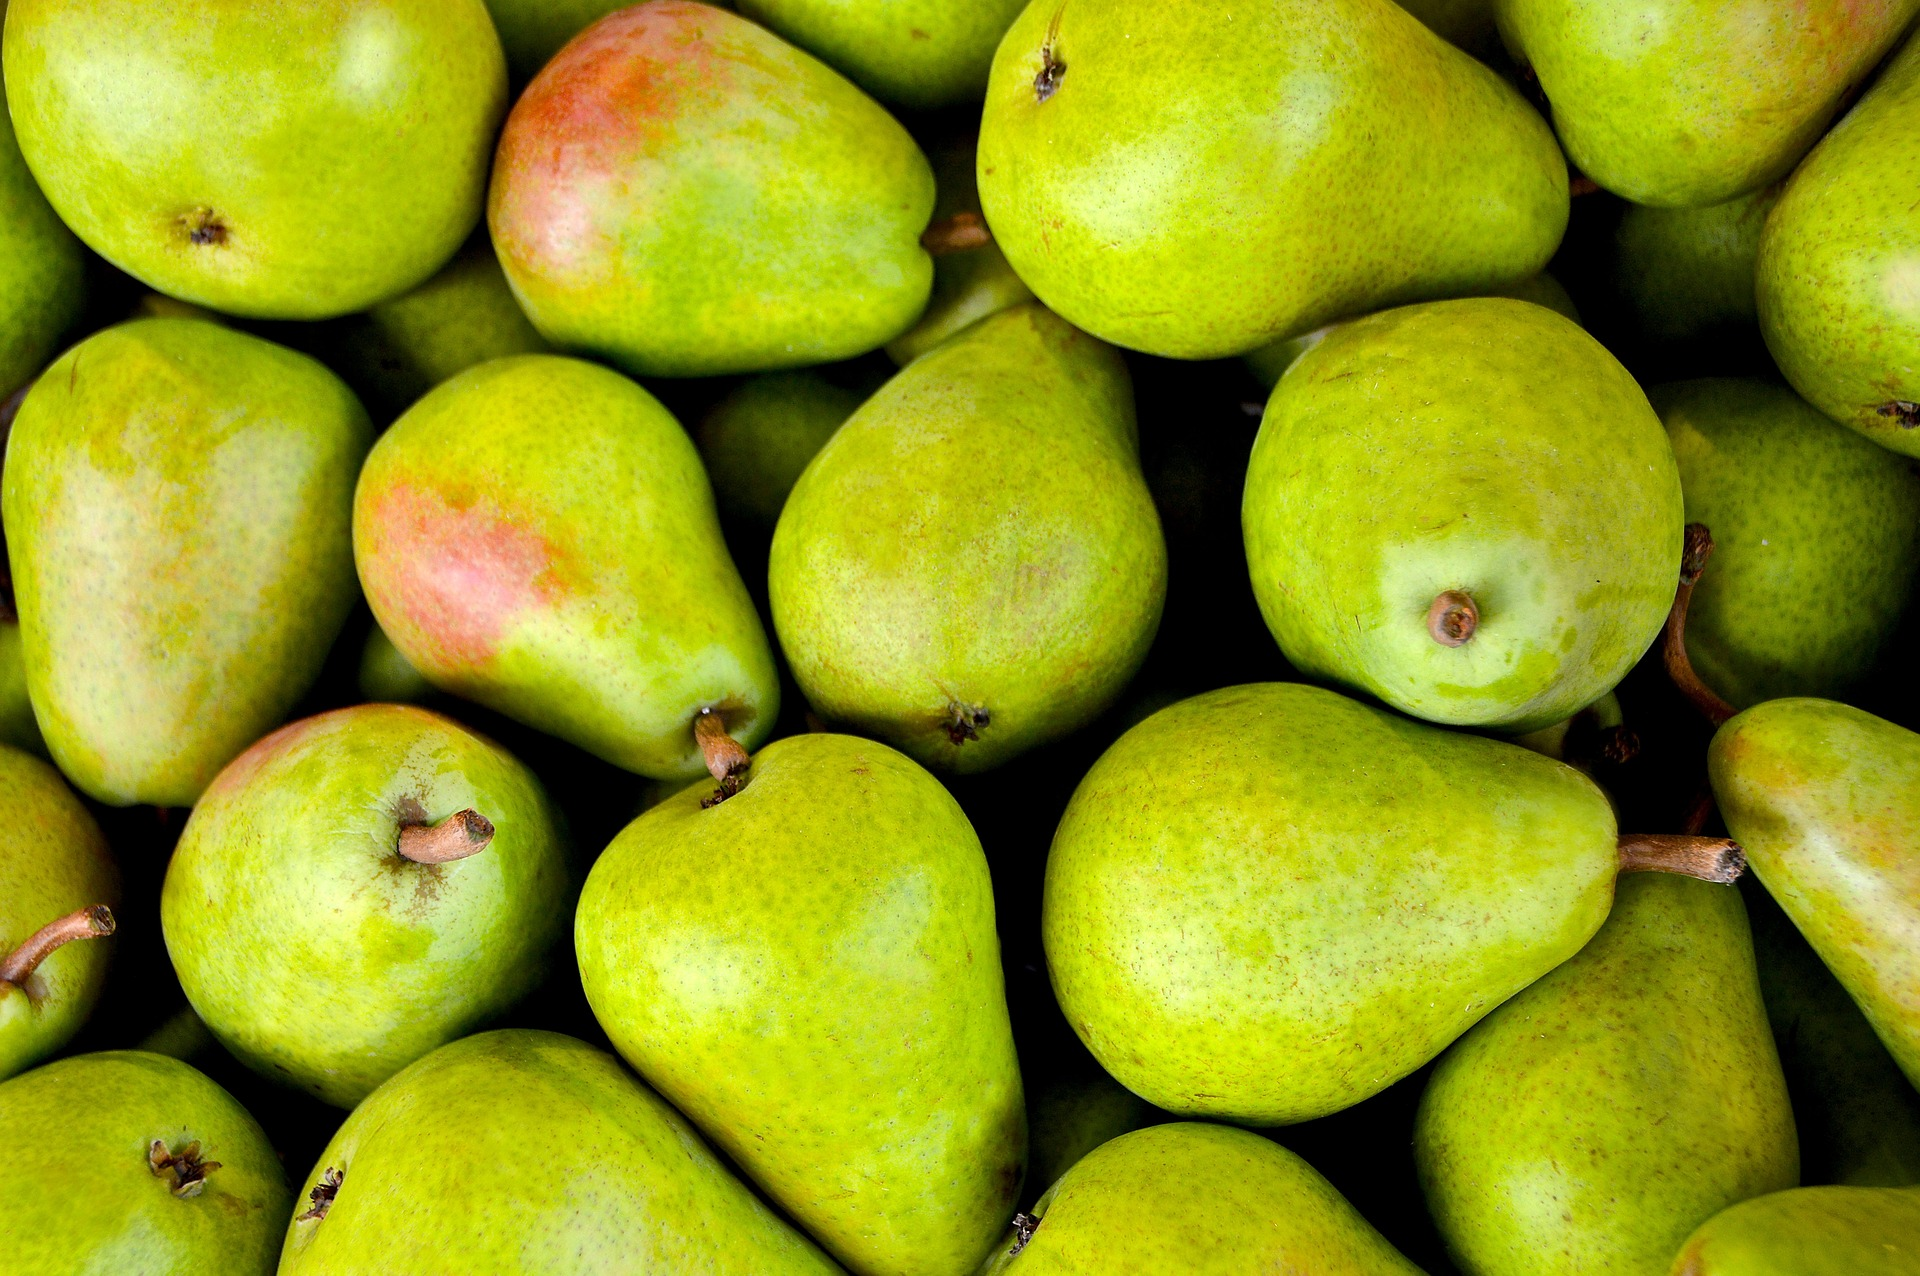 Pears  are tasty and good for you. They contain vitamins A, B1, B2, C, E, folate and niacin. Skip the vitamins, get outdoors and grow a pear tree, or two.